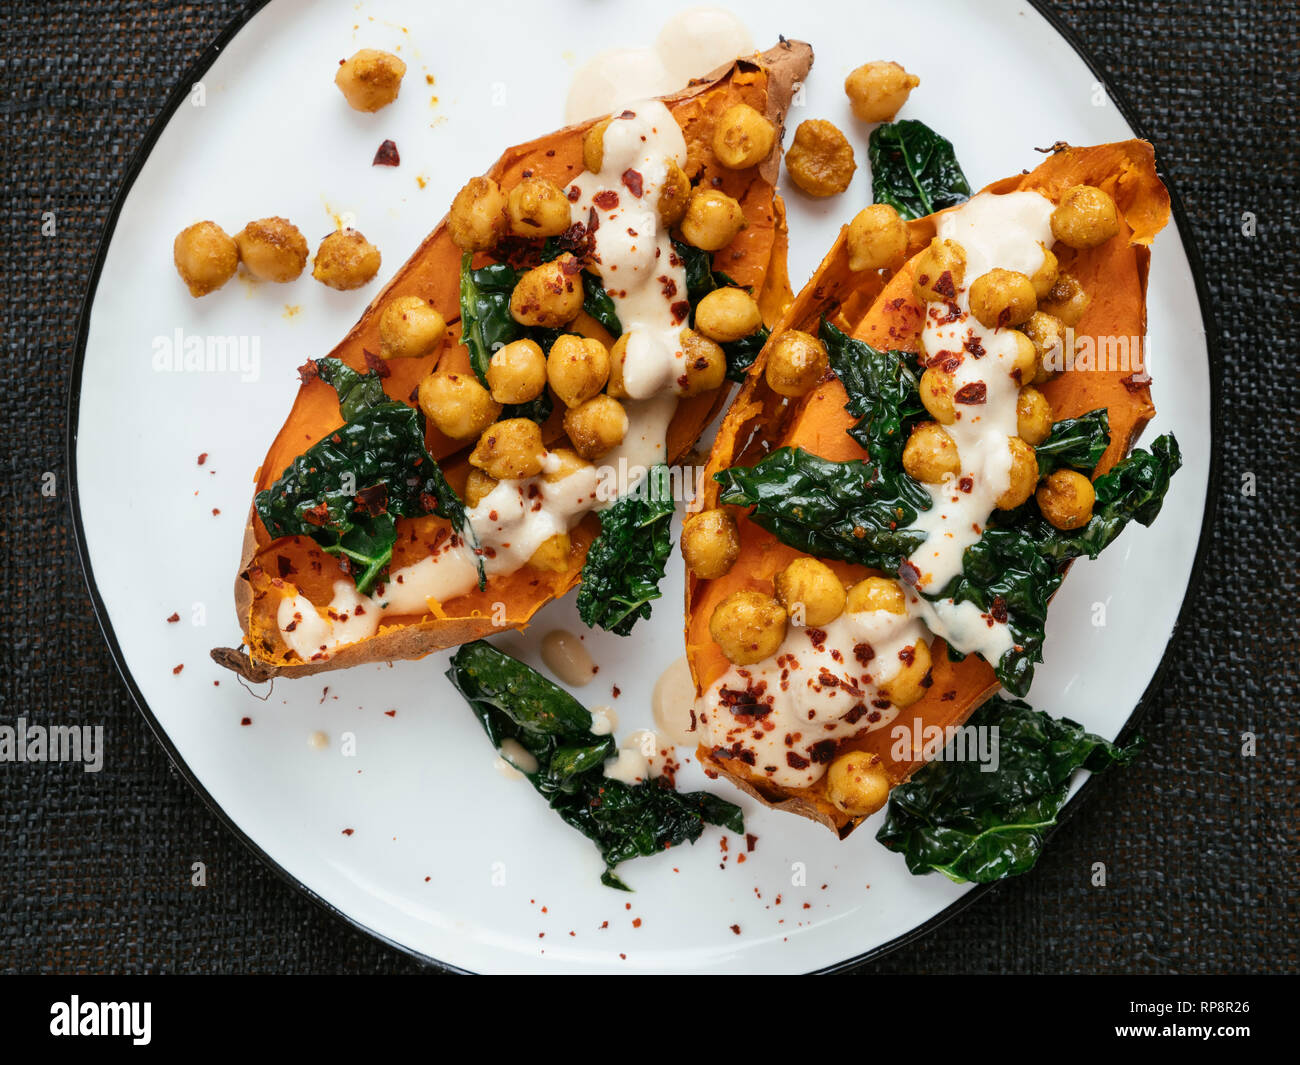 Baked sweet potatoes loaded with spicy chickpeas and kale and a tahini Dressing. - Stock Image